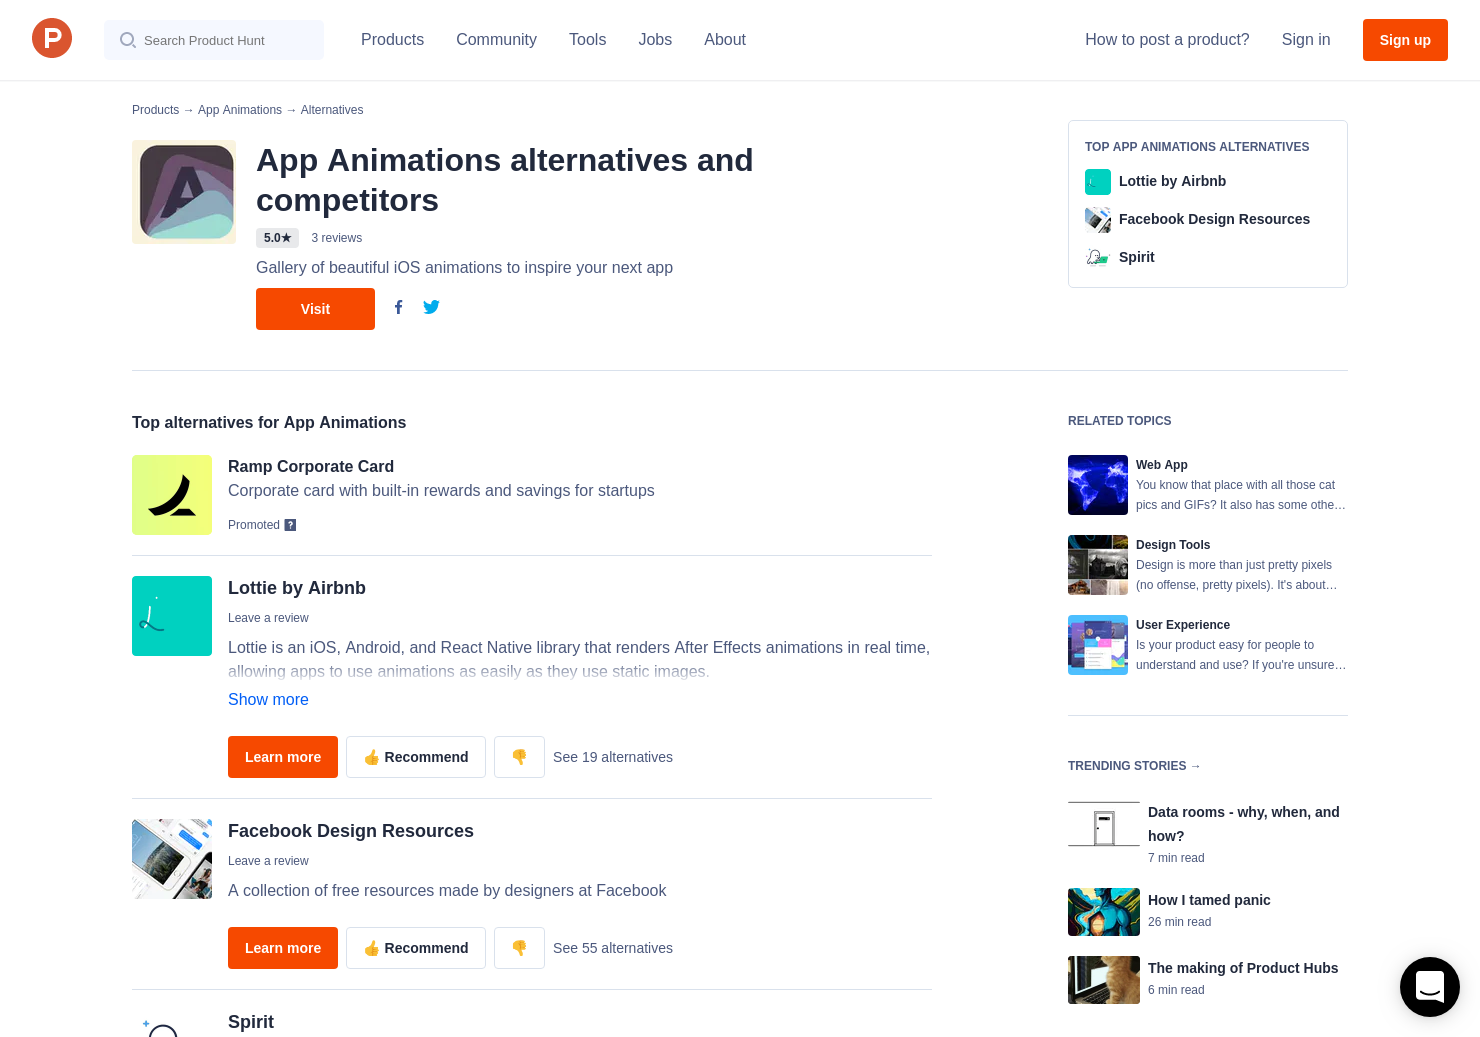 13 Alternatives to App Animations | Product Hunt